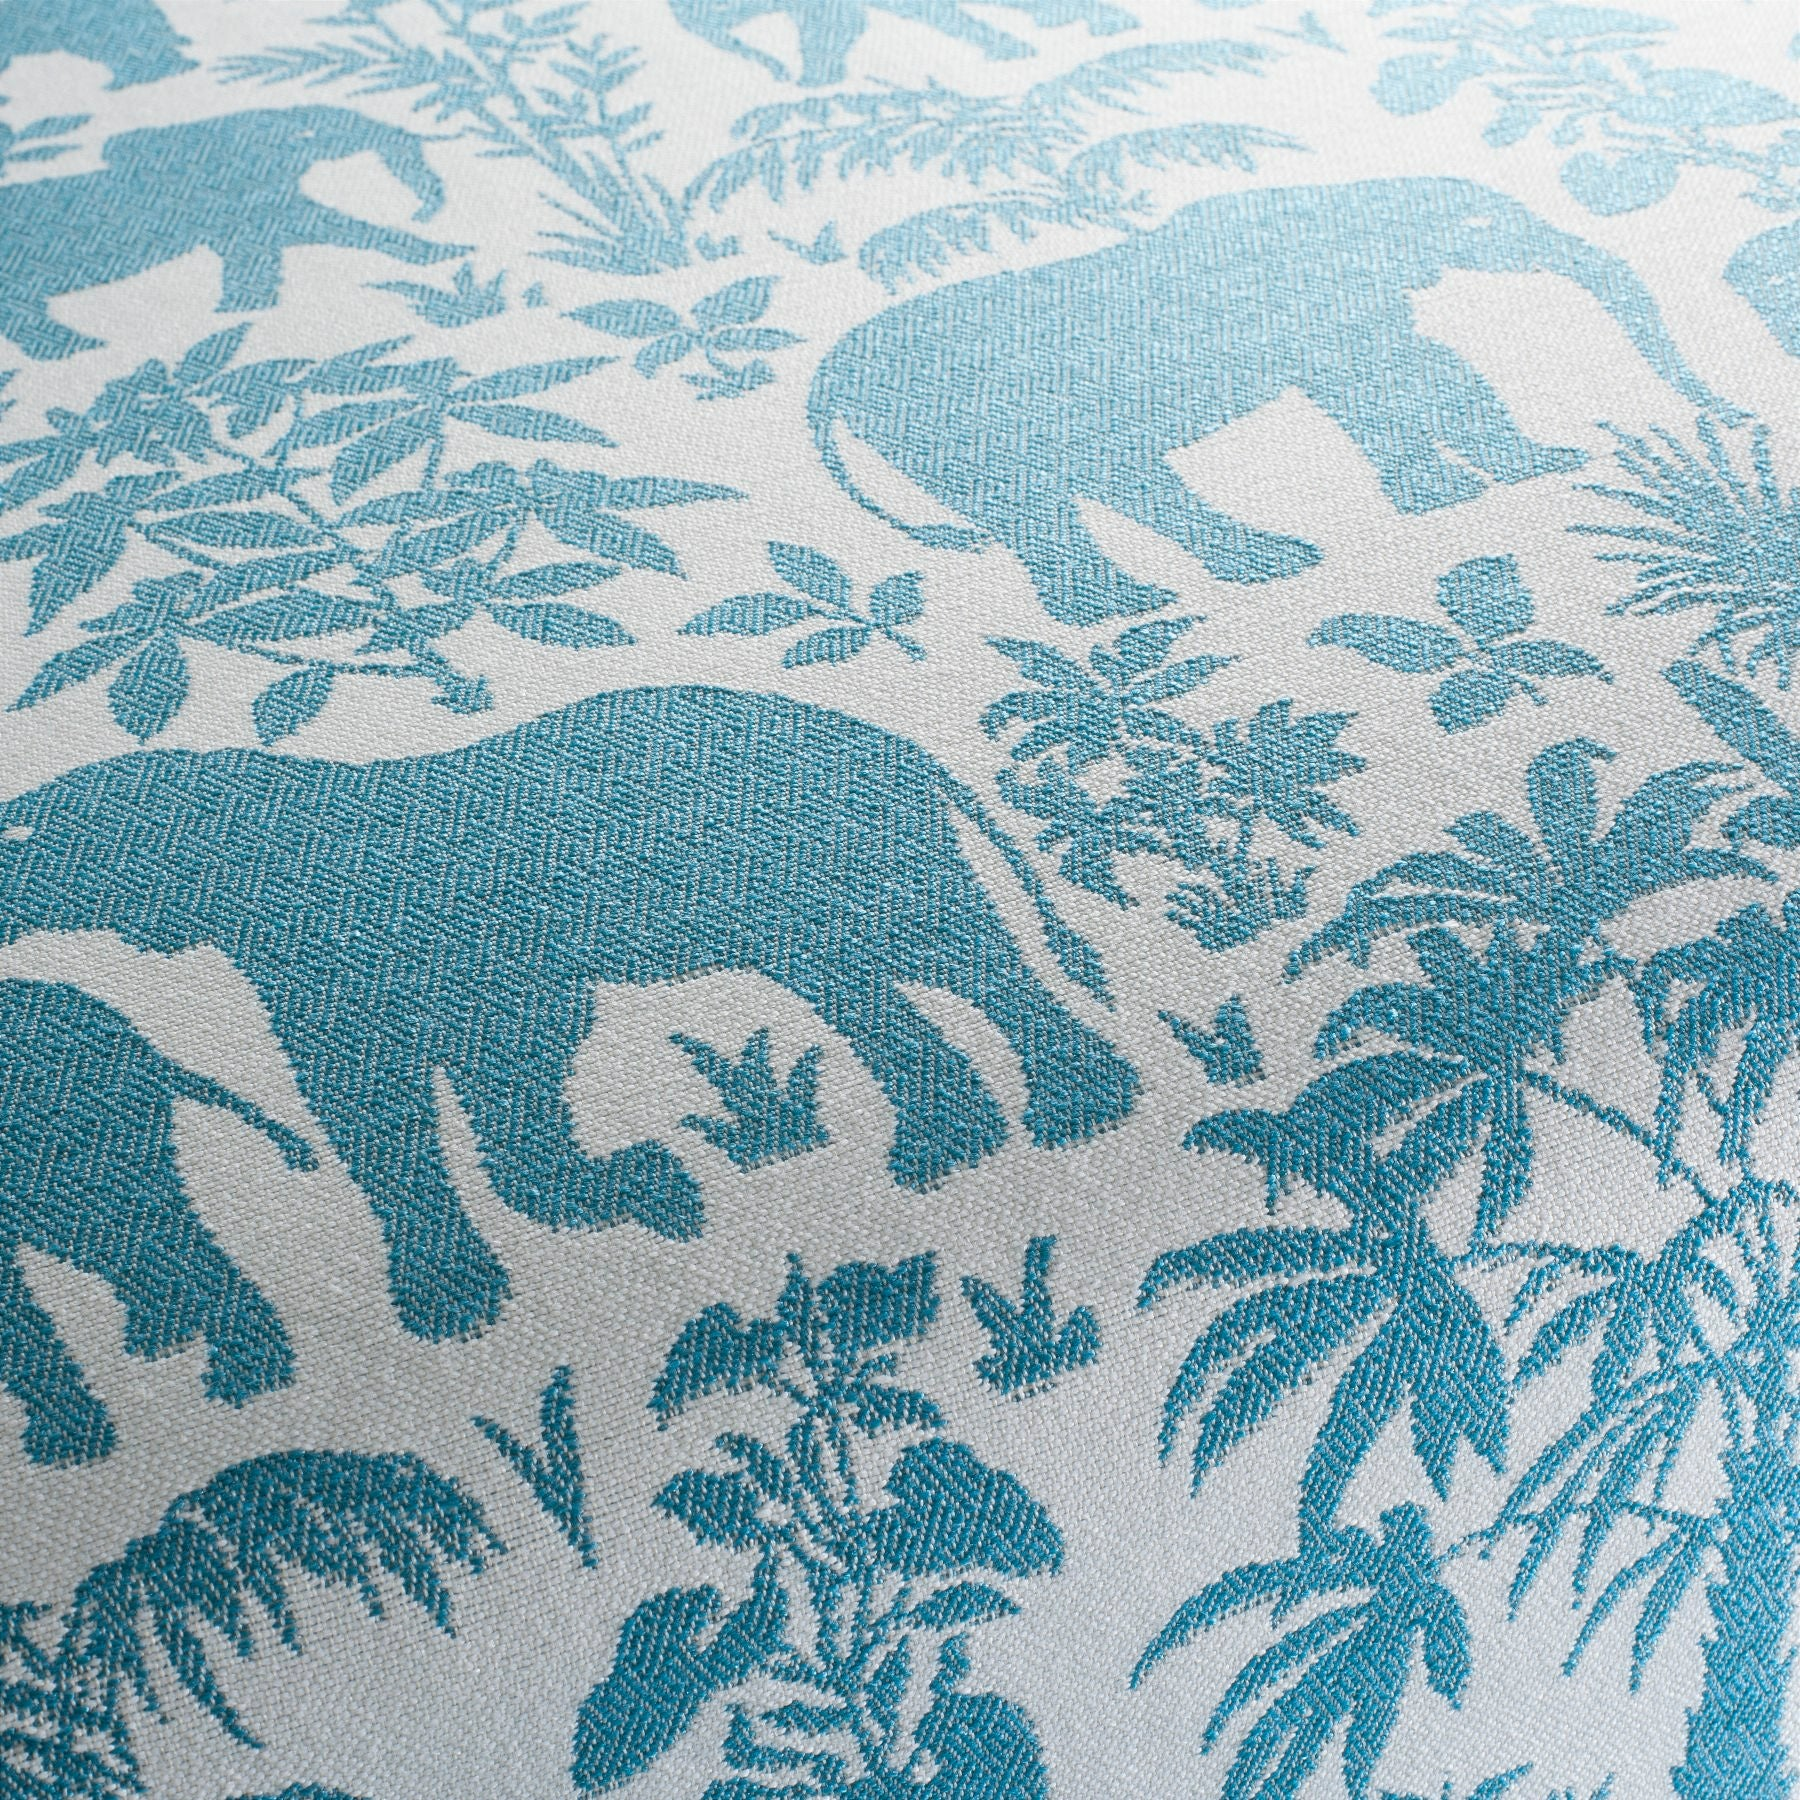 Elephants 9-2413-080 Fabric